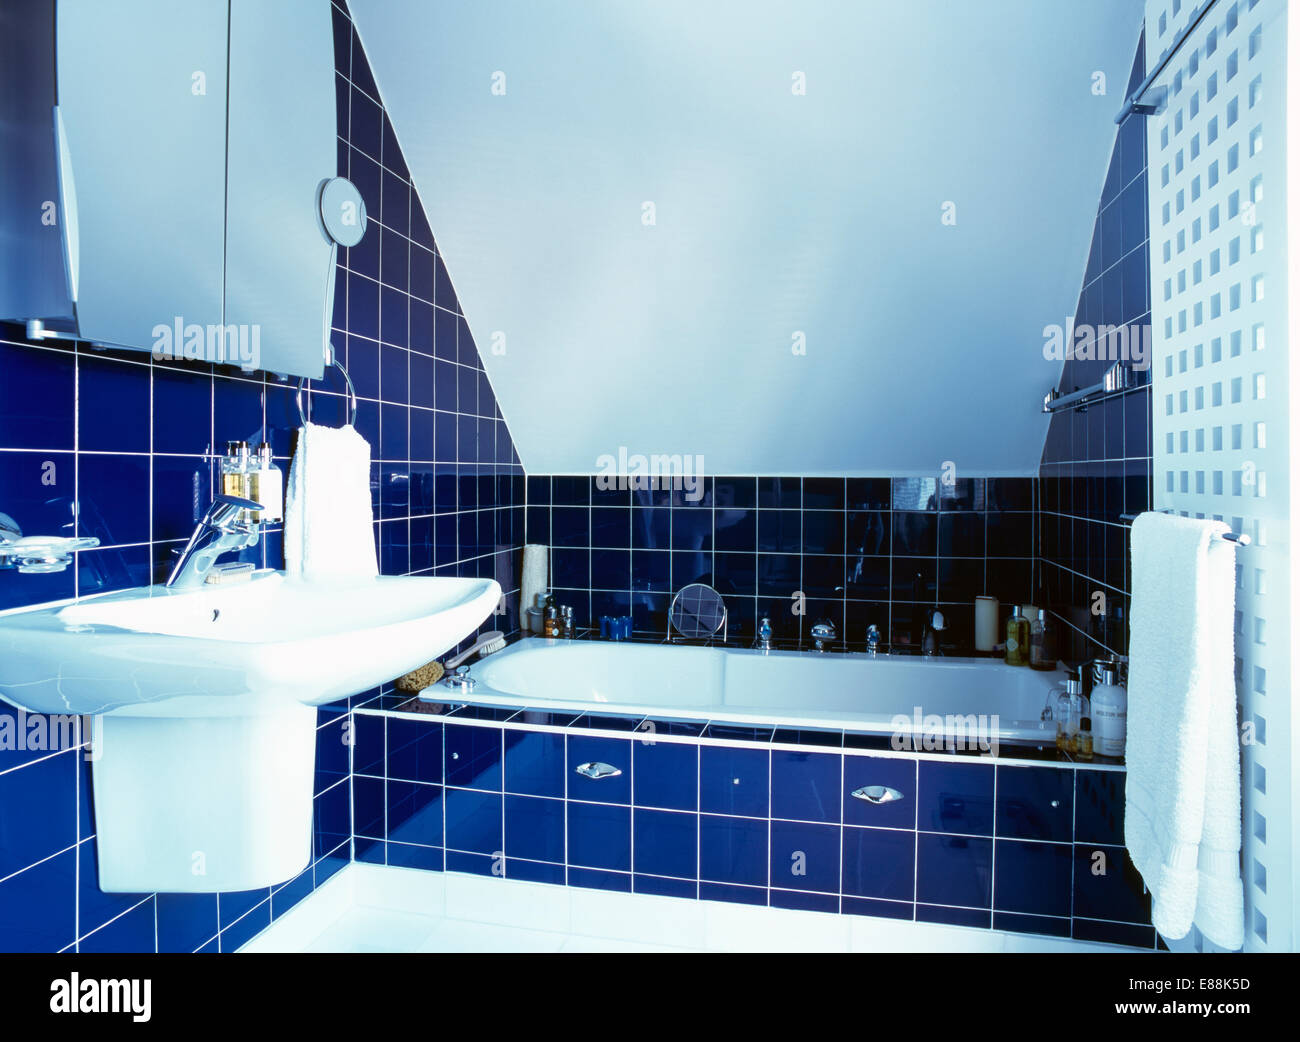 Deep blue wall tiles in modern bathroom Stock Photo: 73949385 - Alamy